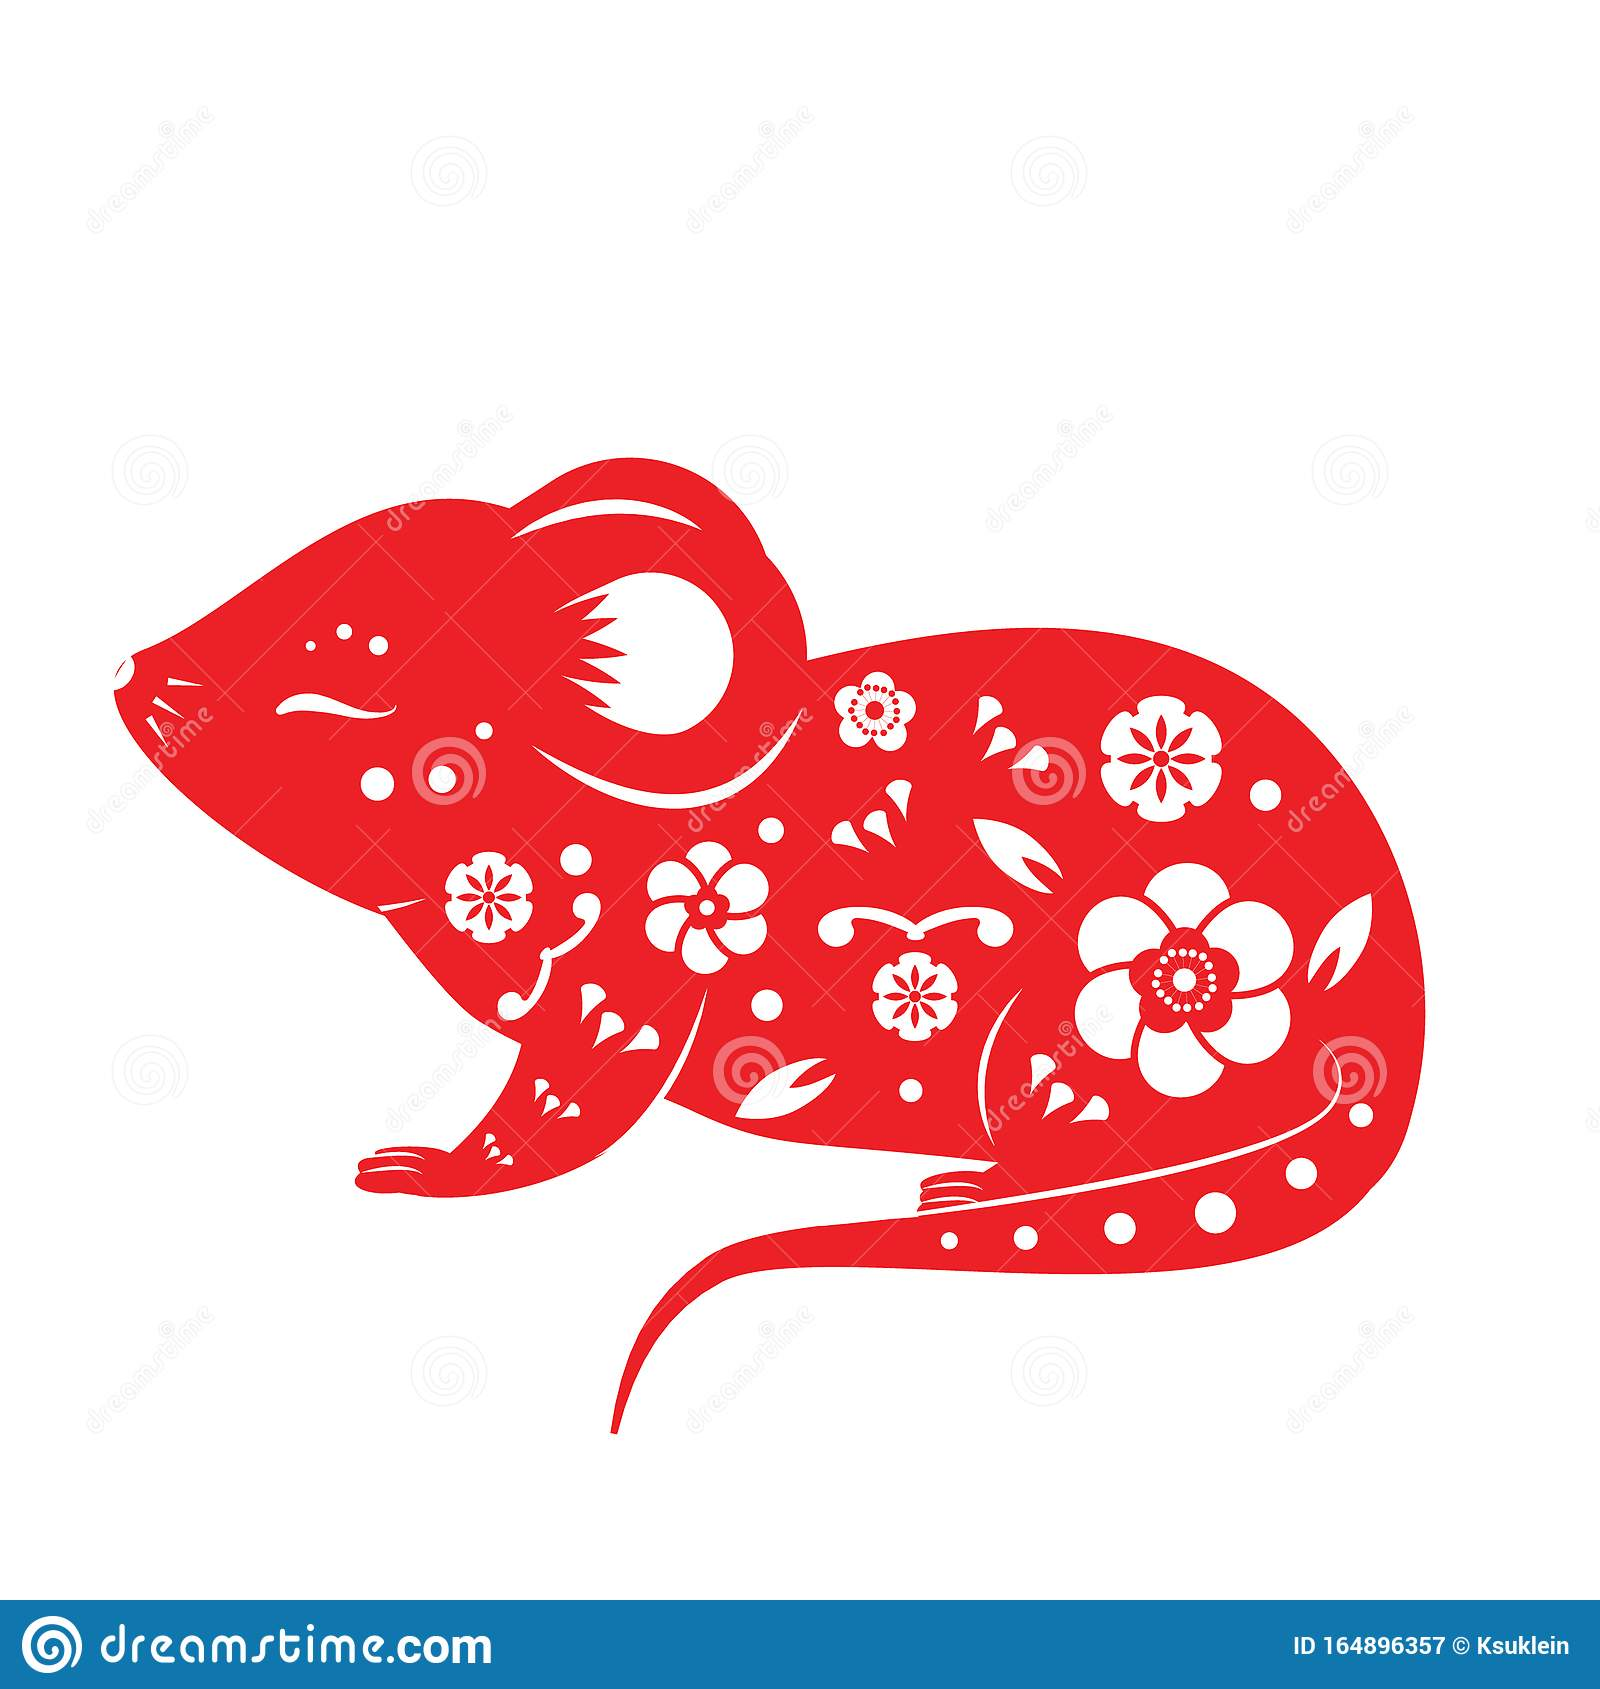 Size #2679 Rat Chinese Symbols Decal Sticker Choose Color